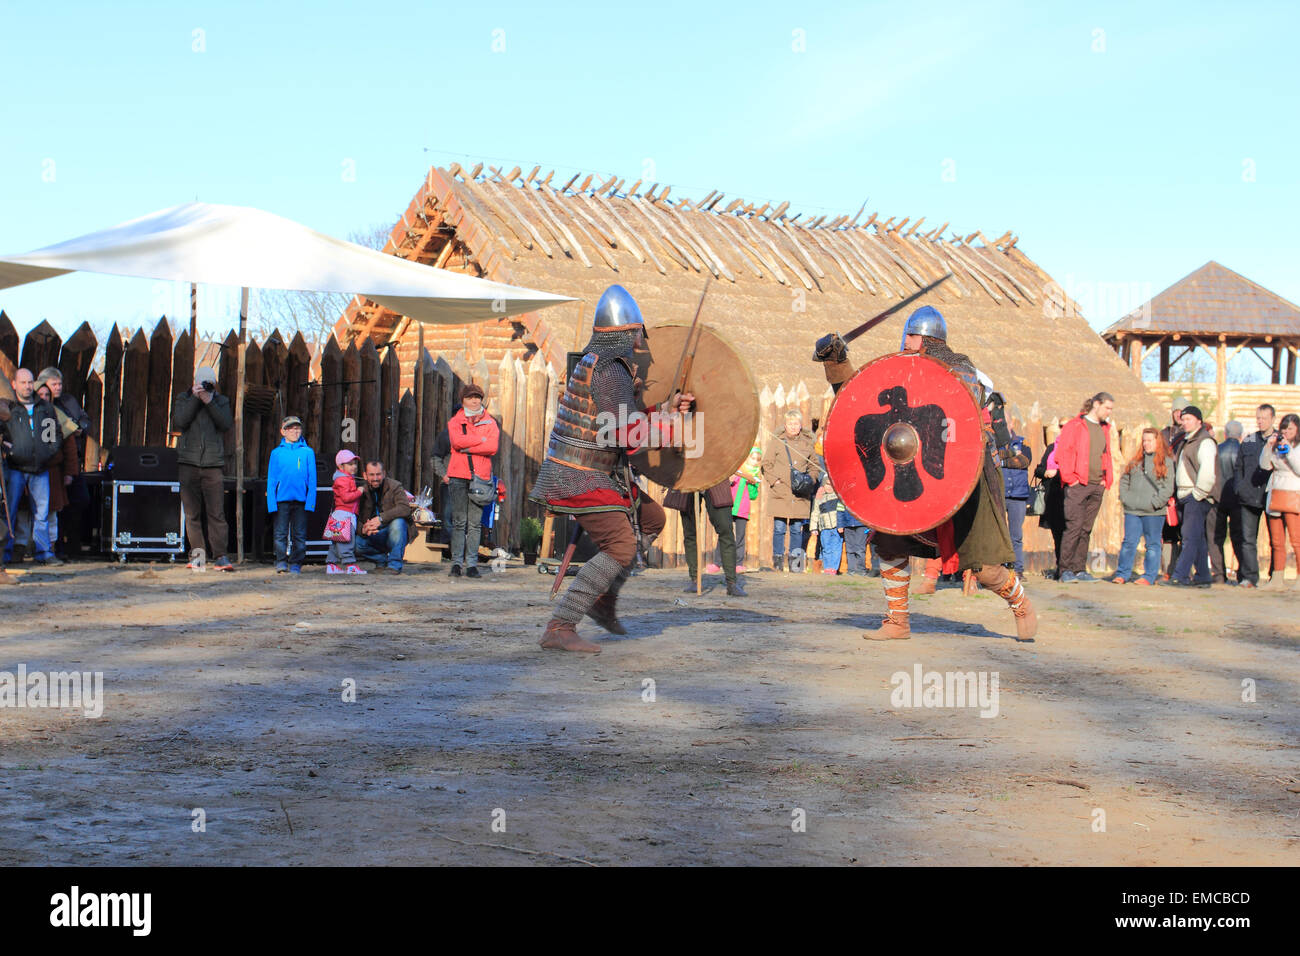 Two warriors in medieval costumes fight in acting battle for tourists in Slawutowo village, Pomerania region, Poland. - Stock Image